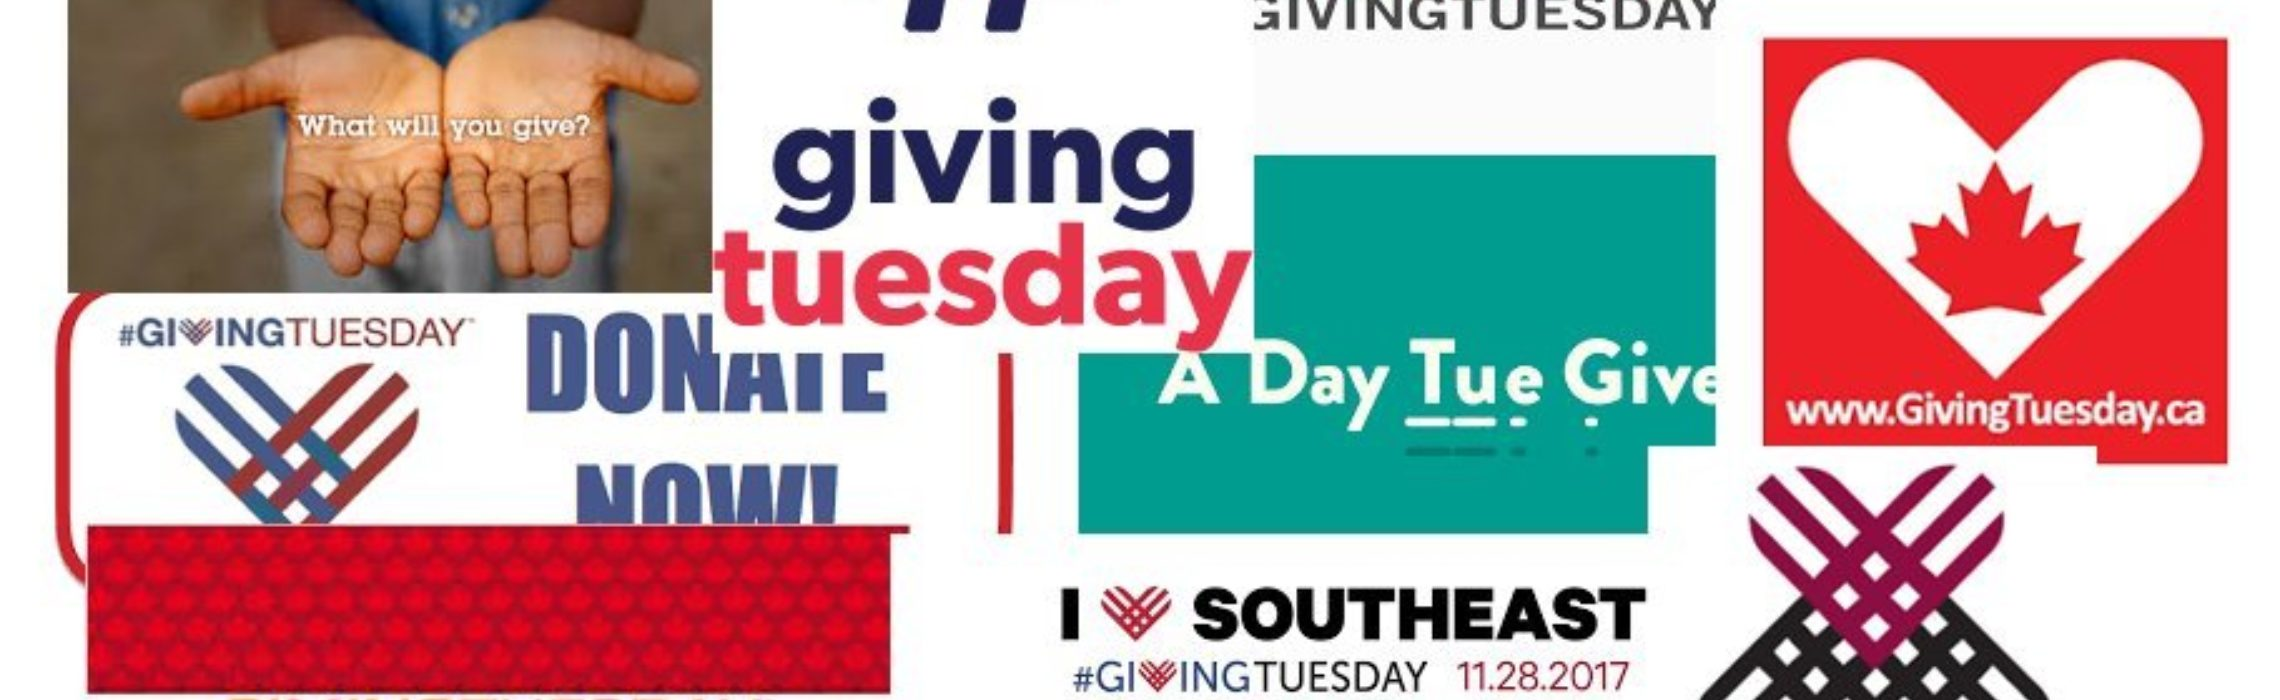 Are You Giving In to #GivingTuesday?